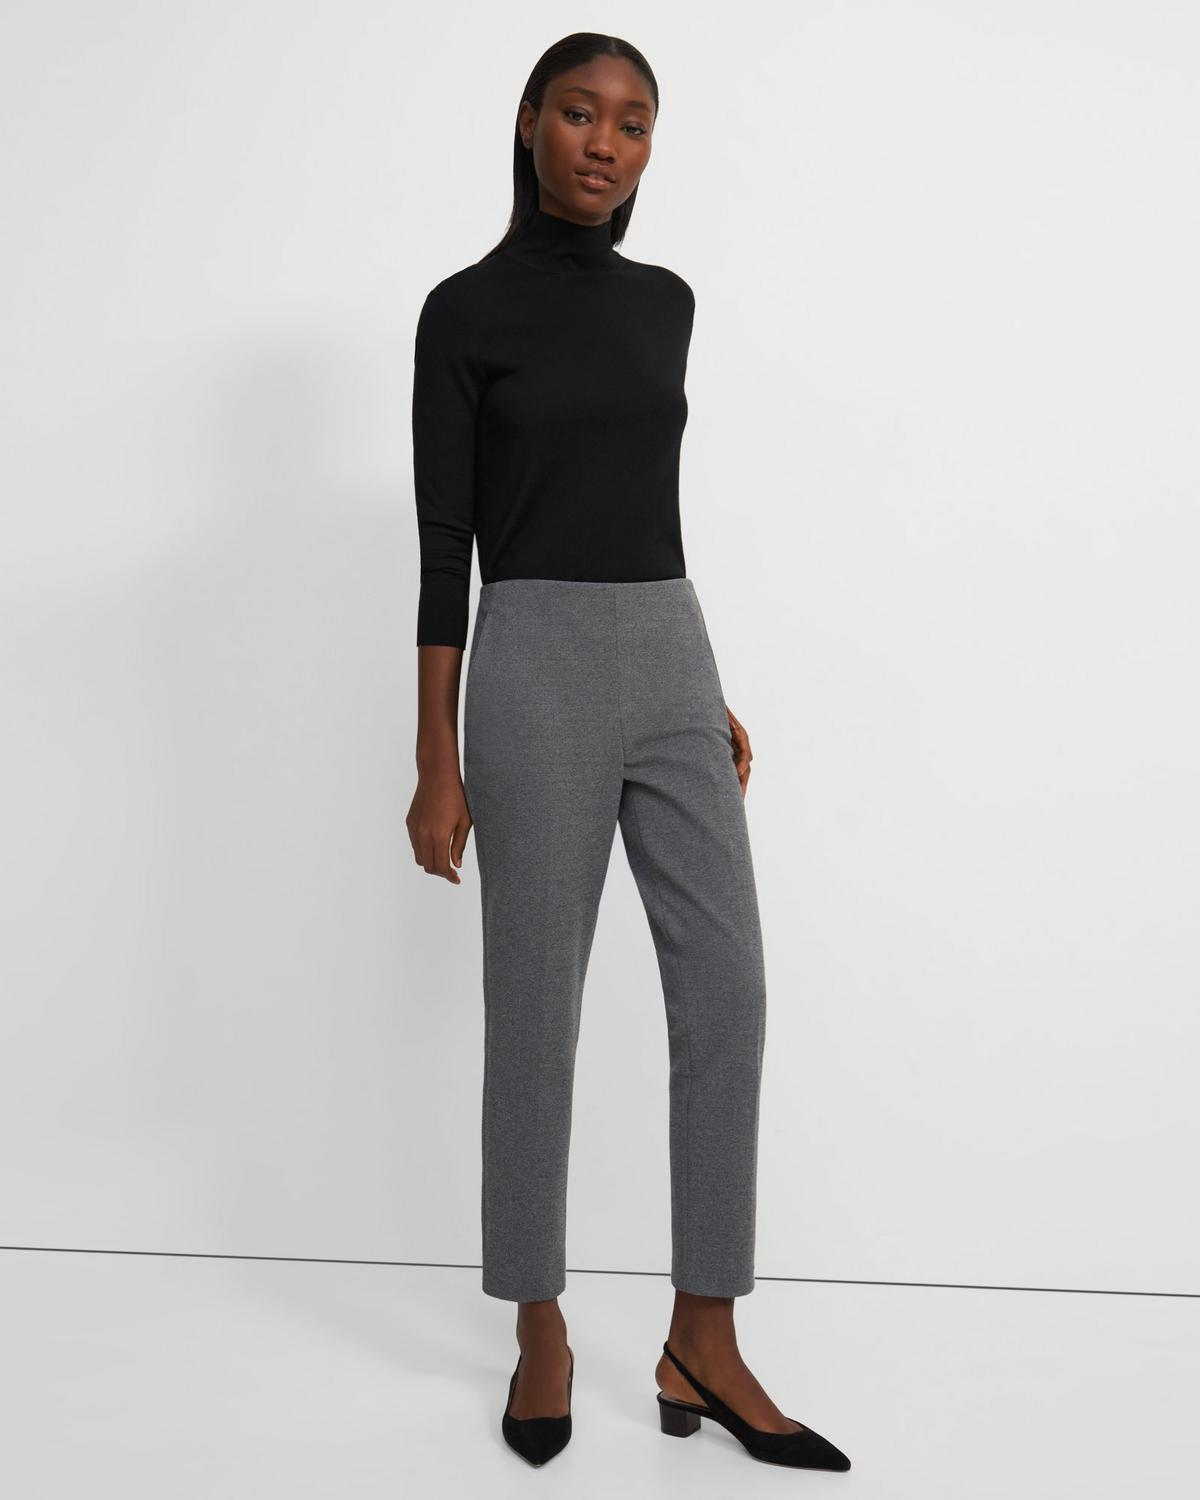 Topstitched Treeca Side Zip Pant in Mélange Ponte